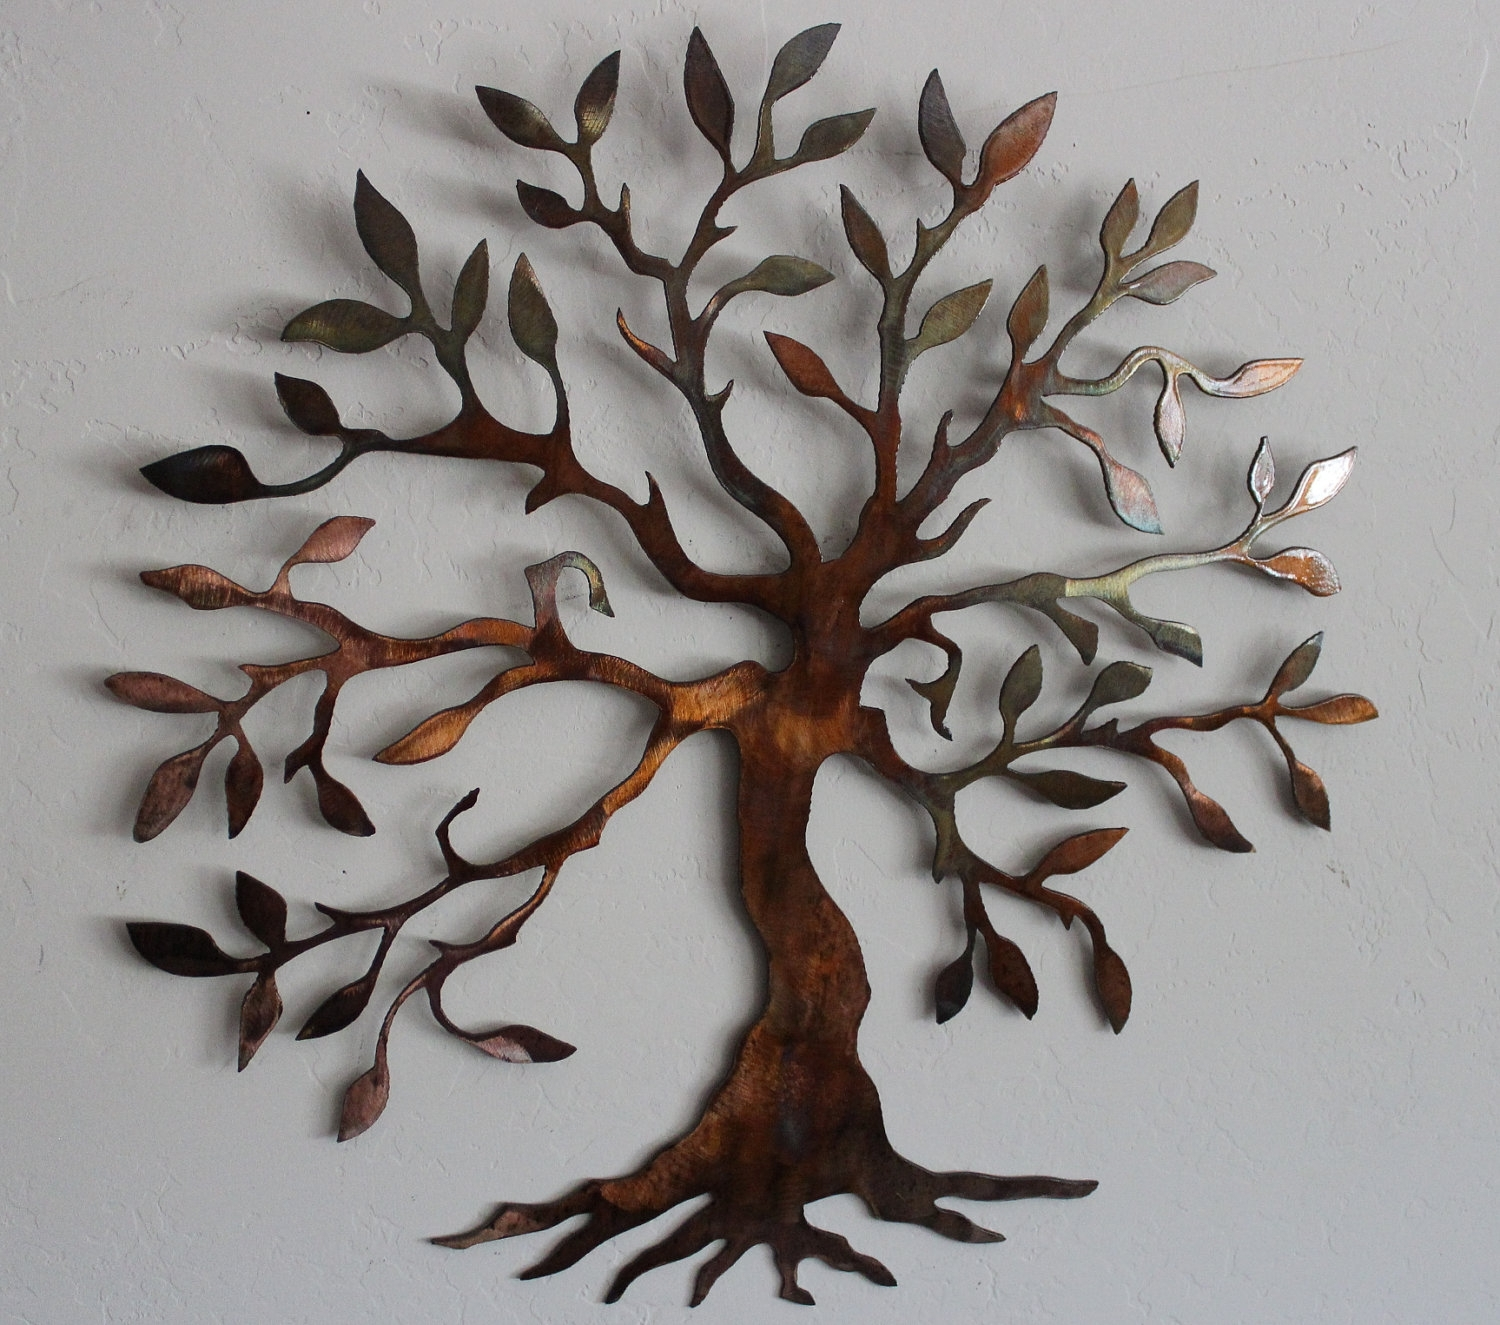 Marvellous Ideas Metal Wall Accents With Olive Tree Of Live Art Throughout Most Up To Date Metal Wall Accents (View 5 of 15)